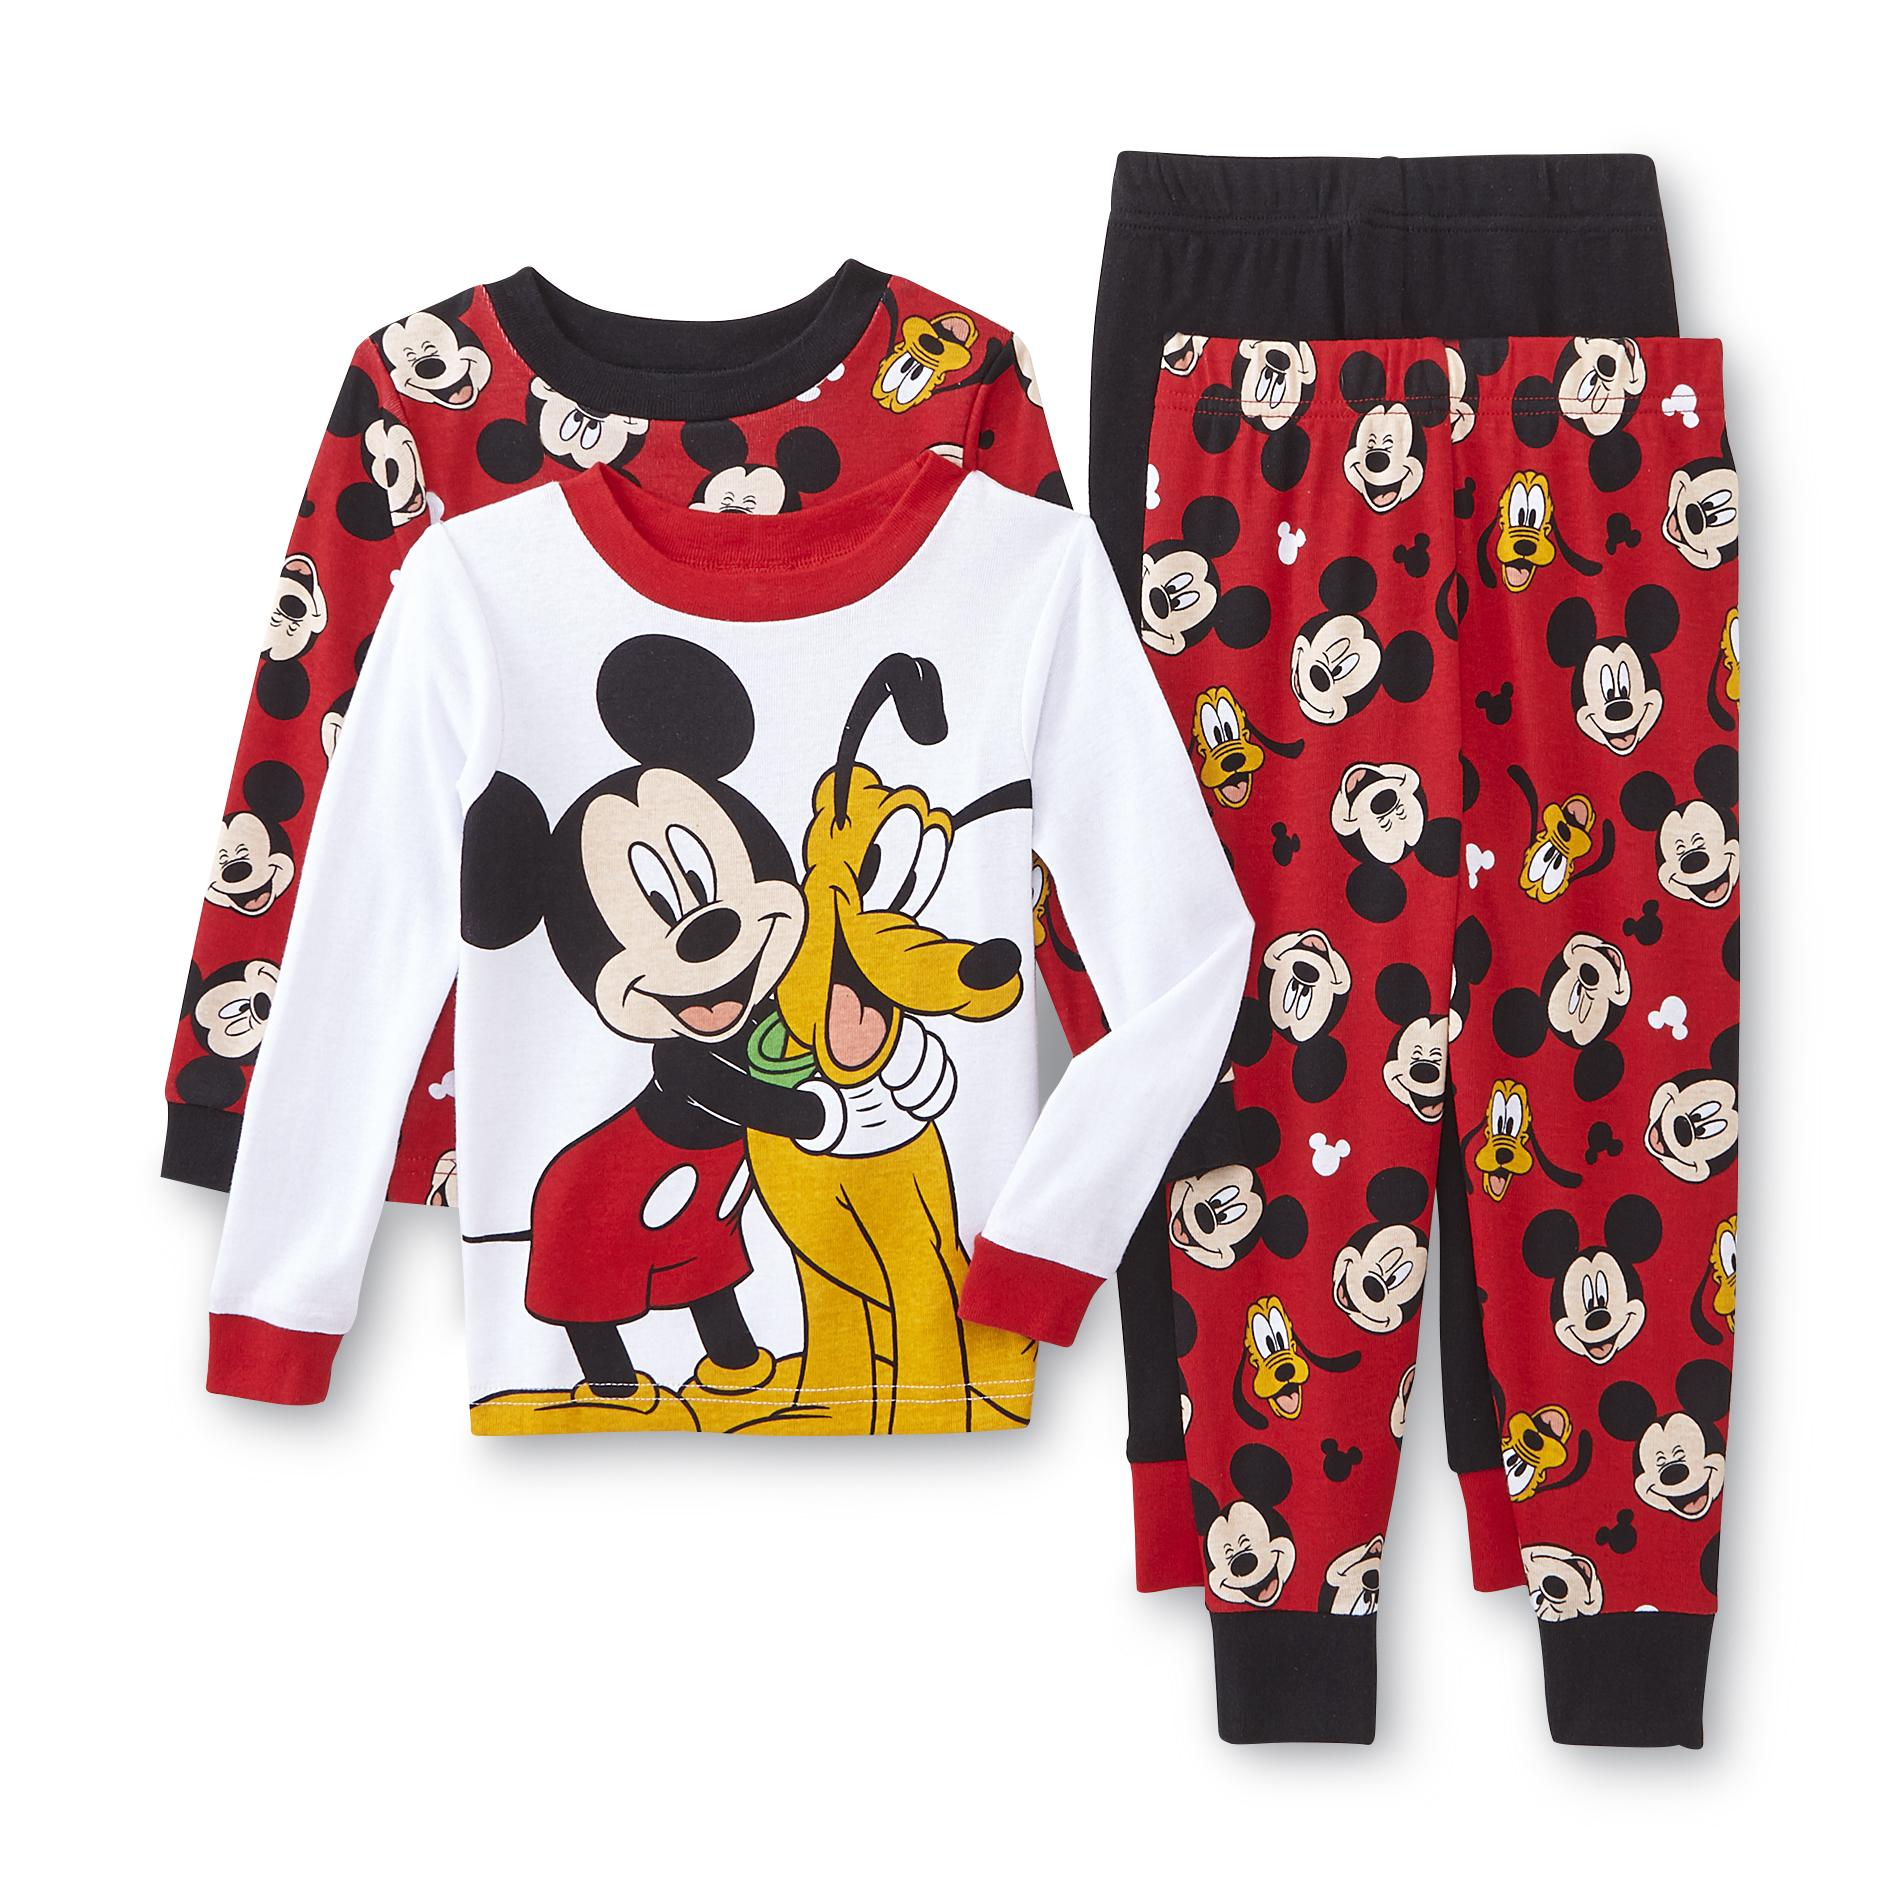 Mickey Mouse Infant & Toddler Boy's 2-Pairs Pajamas